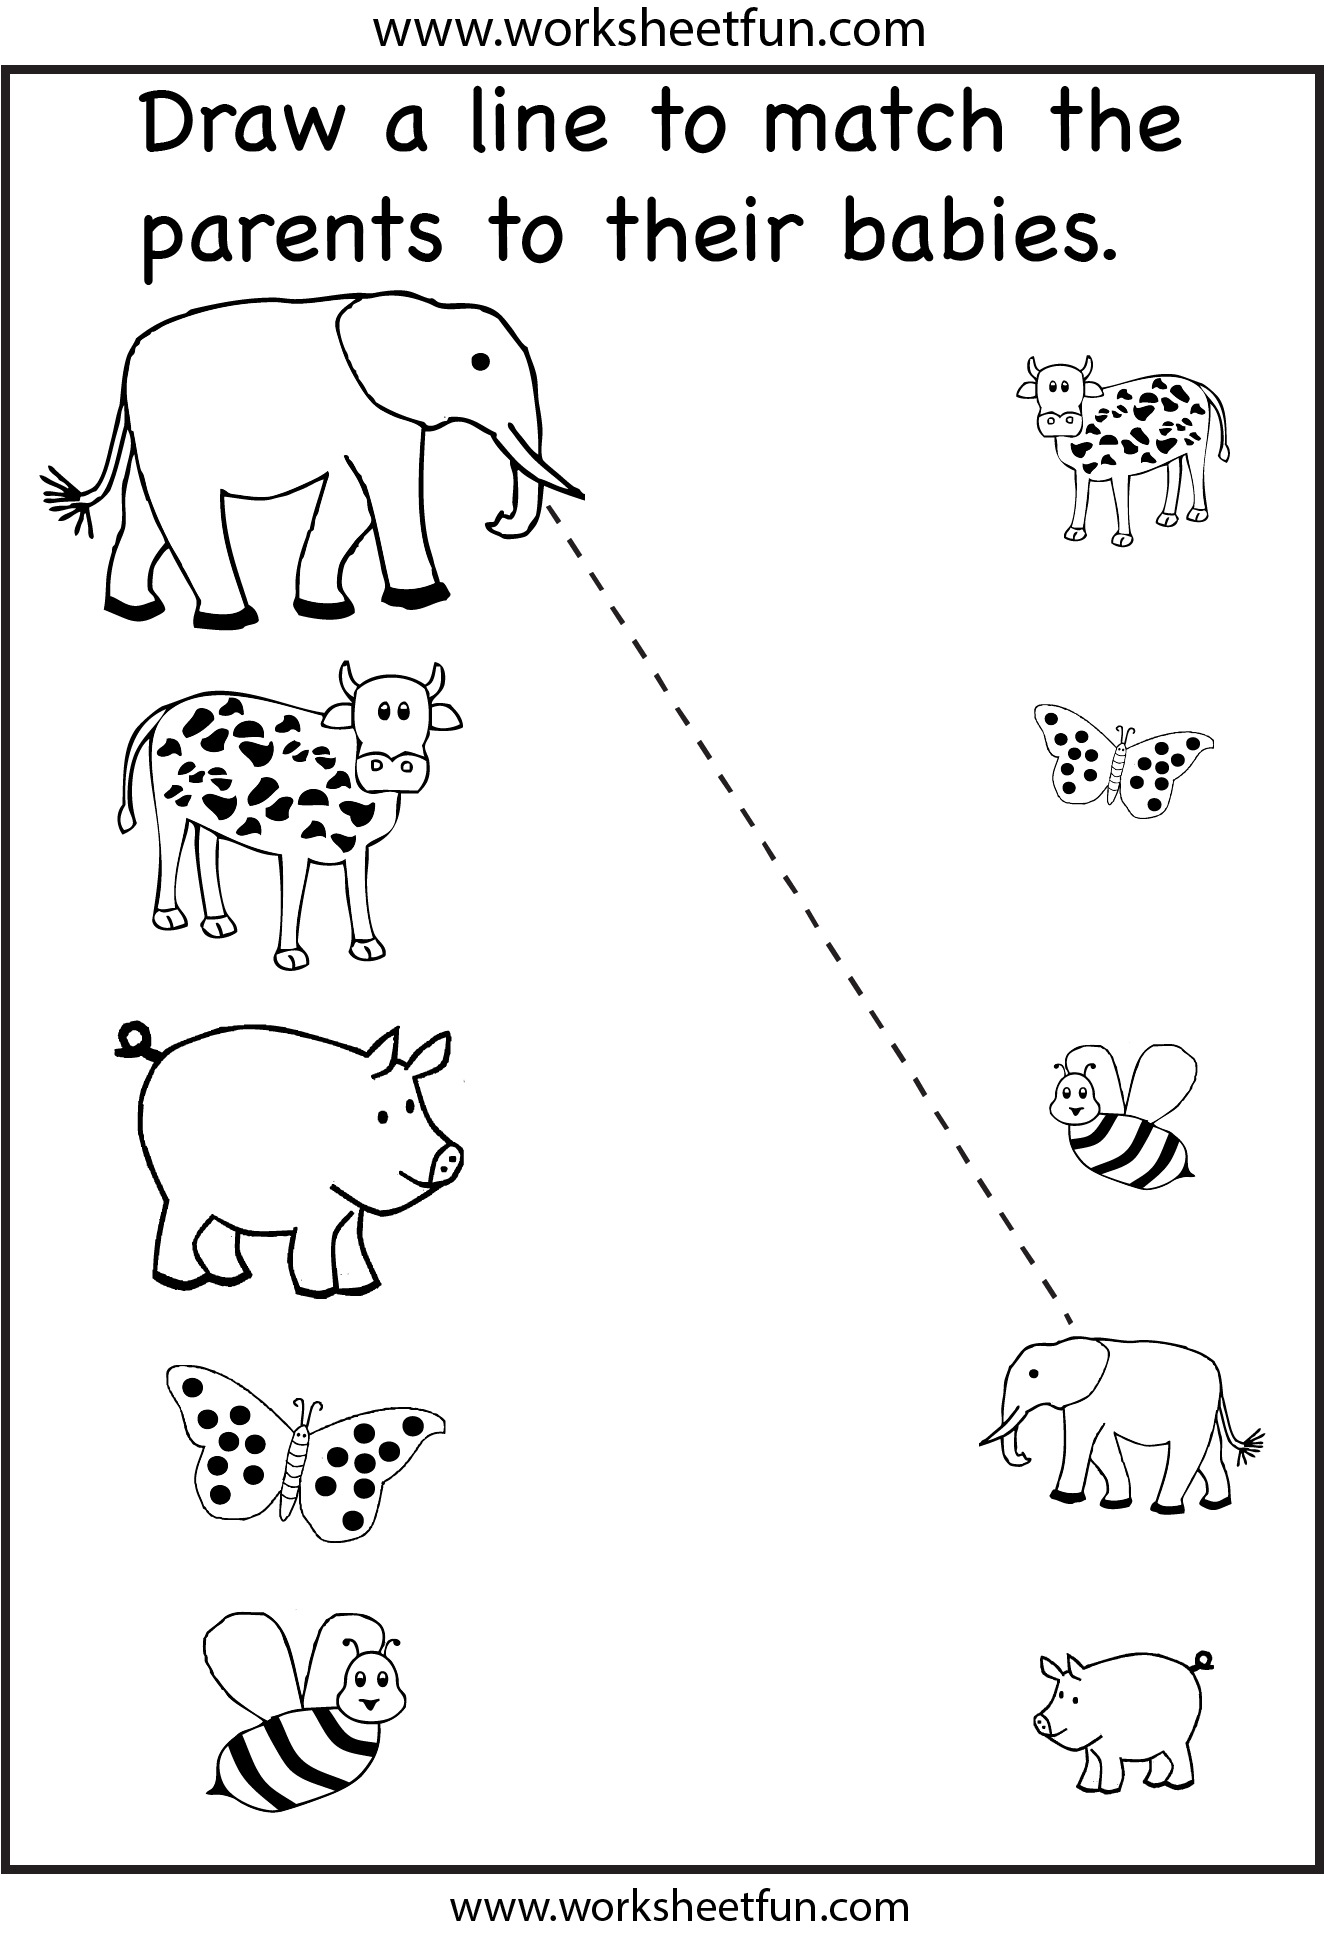 Printable Activities For Toddlers 7 #7768 - Free Printable Activities For Preschoolers